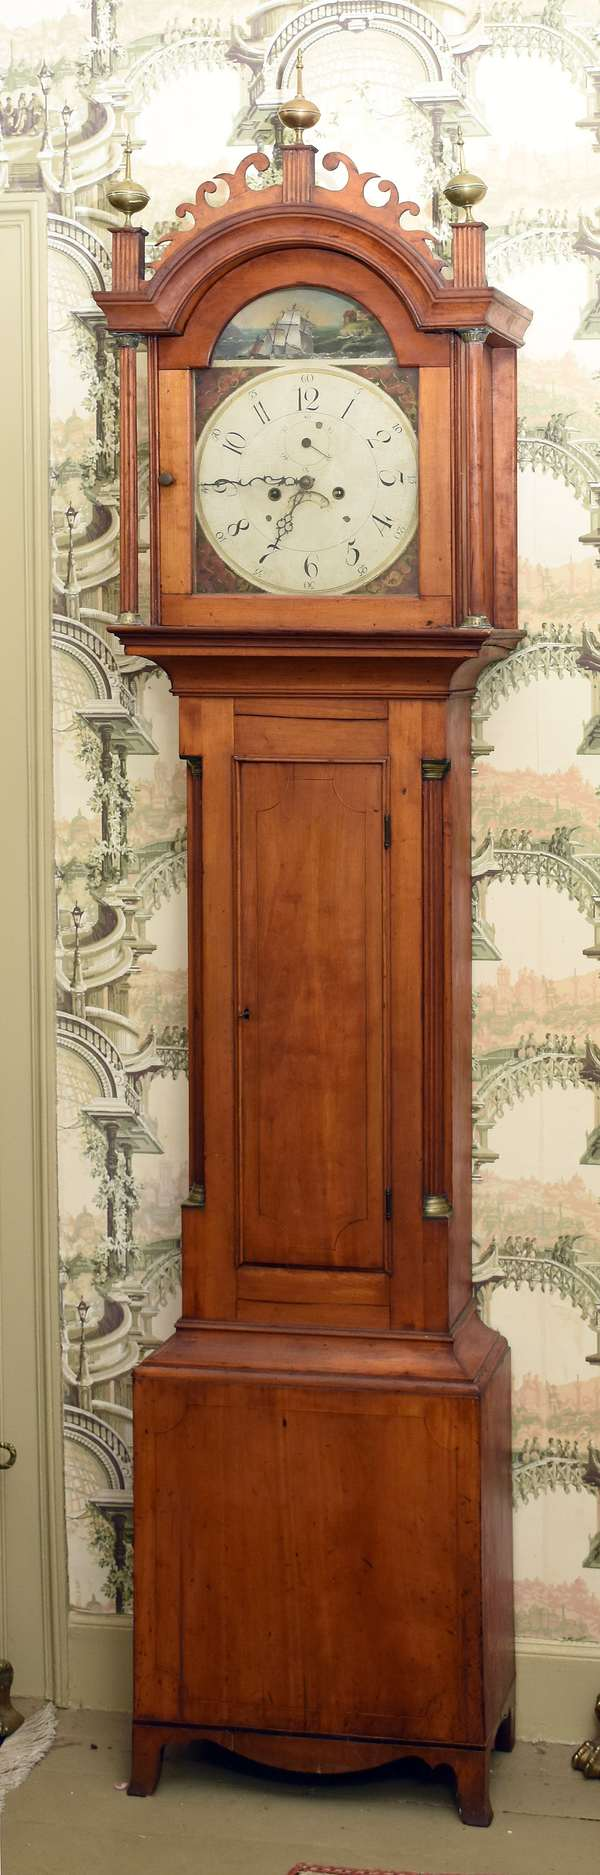 Choice Federal NH inlaid cherry grandfather clock, case in remarkable original condition, rare rocking ship brass and iron works, c. 1810, 89